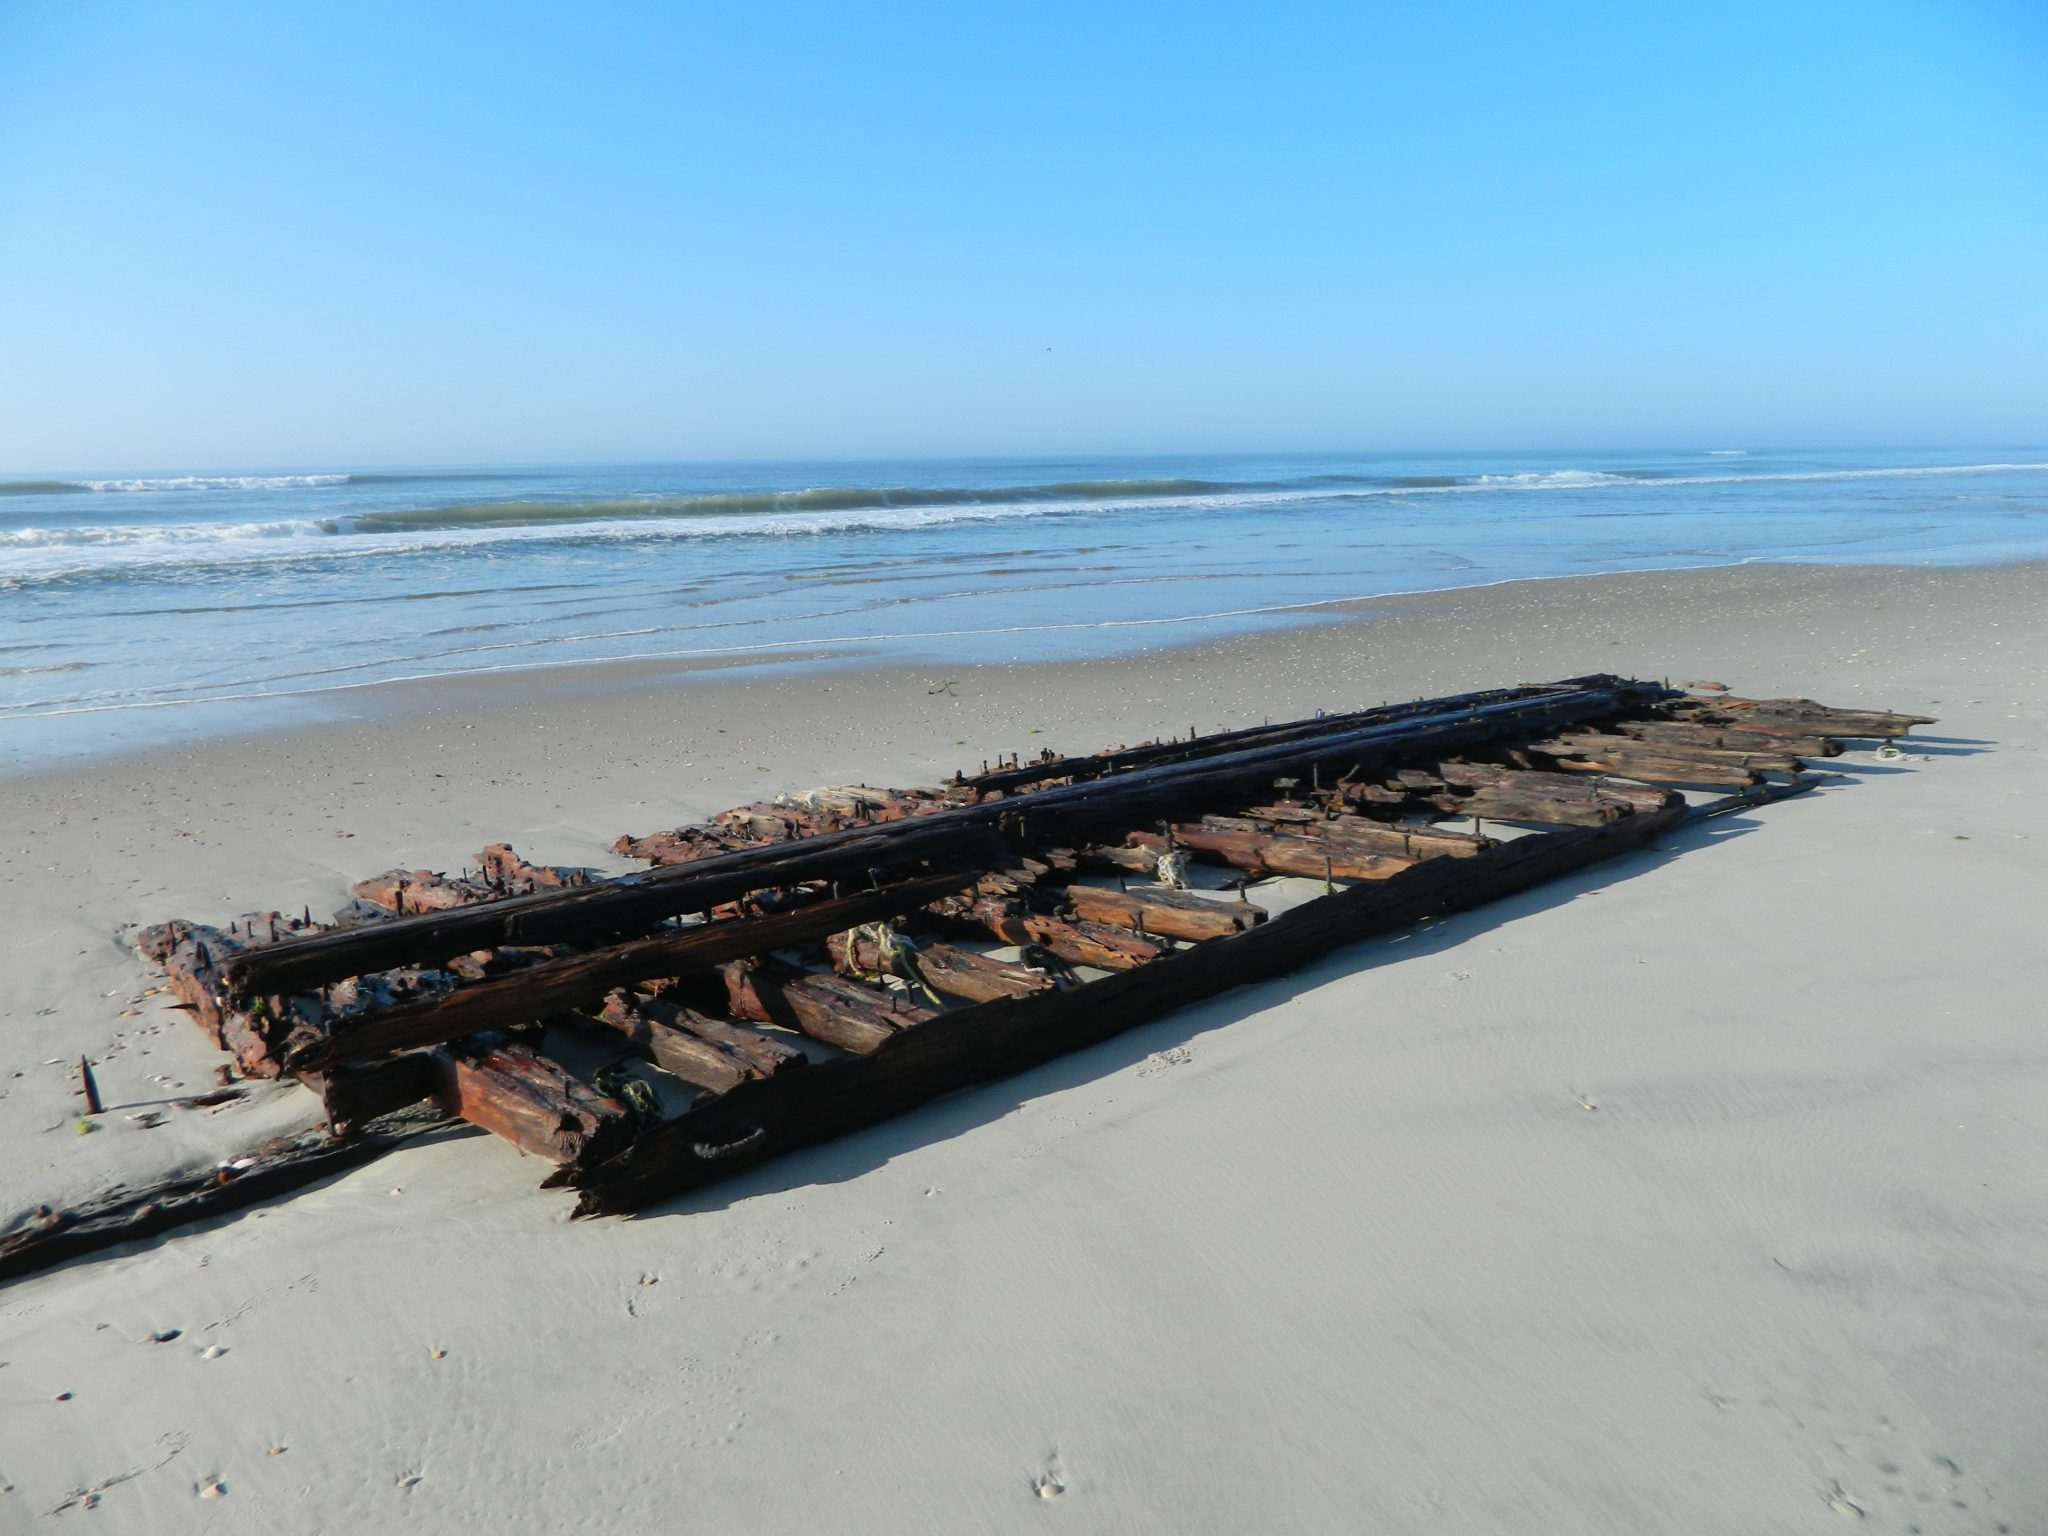 Courtesy-of-Cape-Hatteras-National-Seashore_George-W.-Wells-Shipwreck-04-22-2014_1-2048x1536